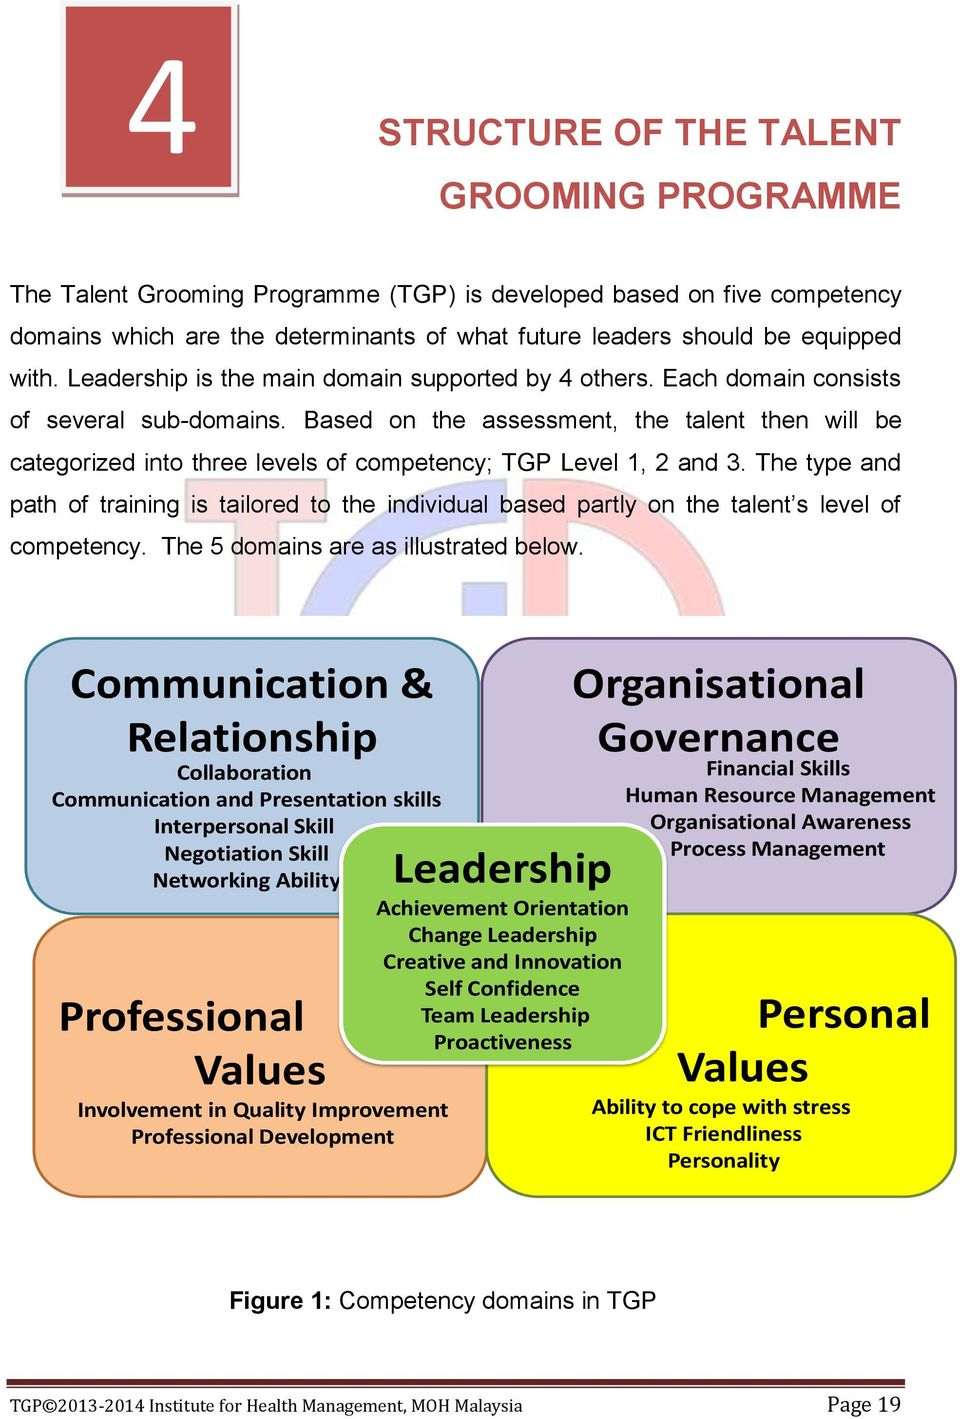 Based on the assessment, the talent then will be categorized into three levels of competency; TGP Level 1, 2 and 3.